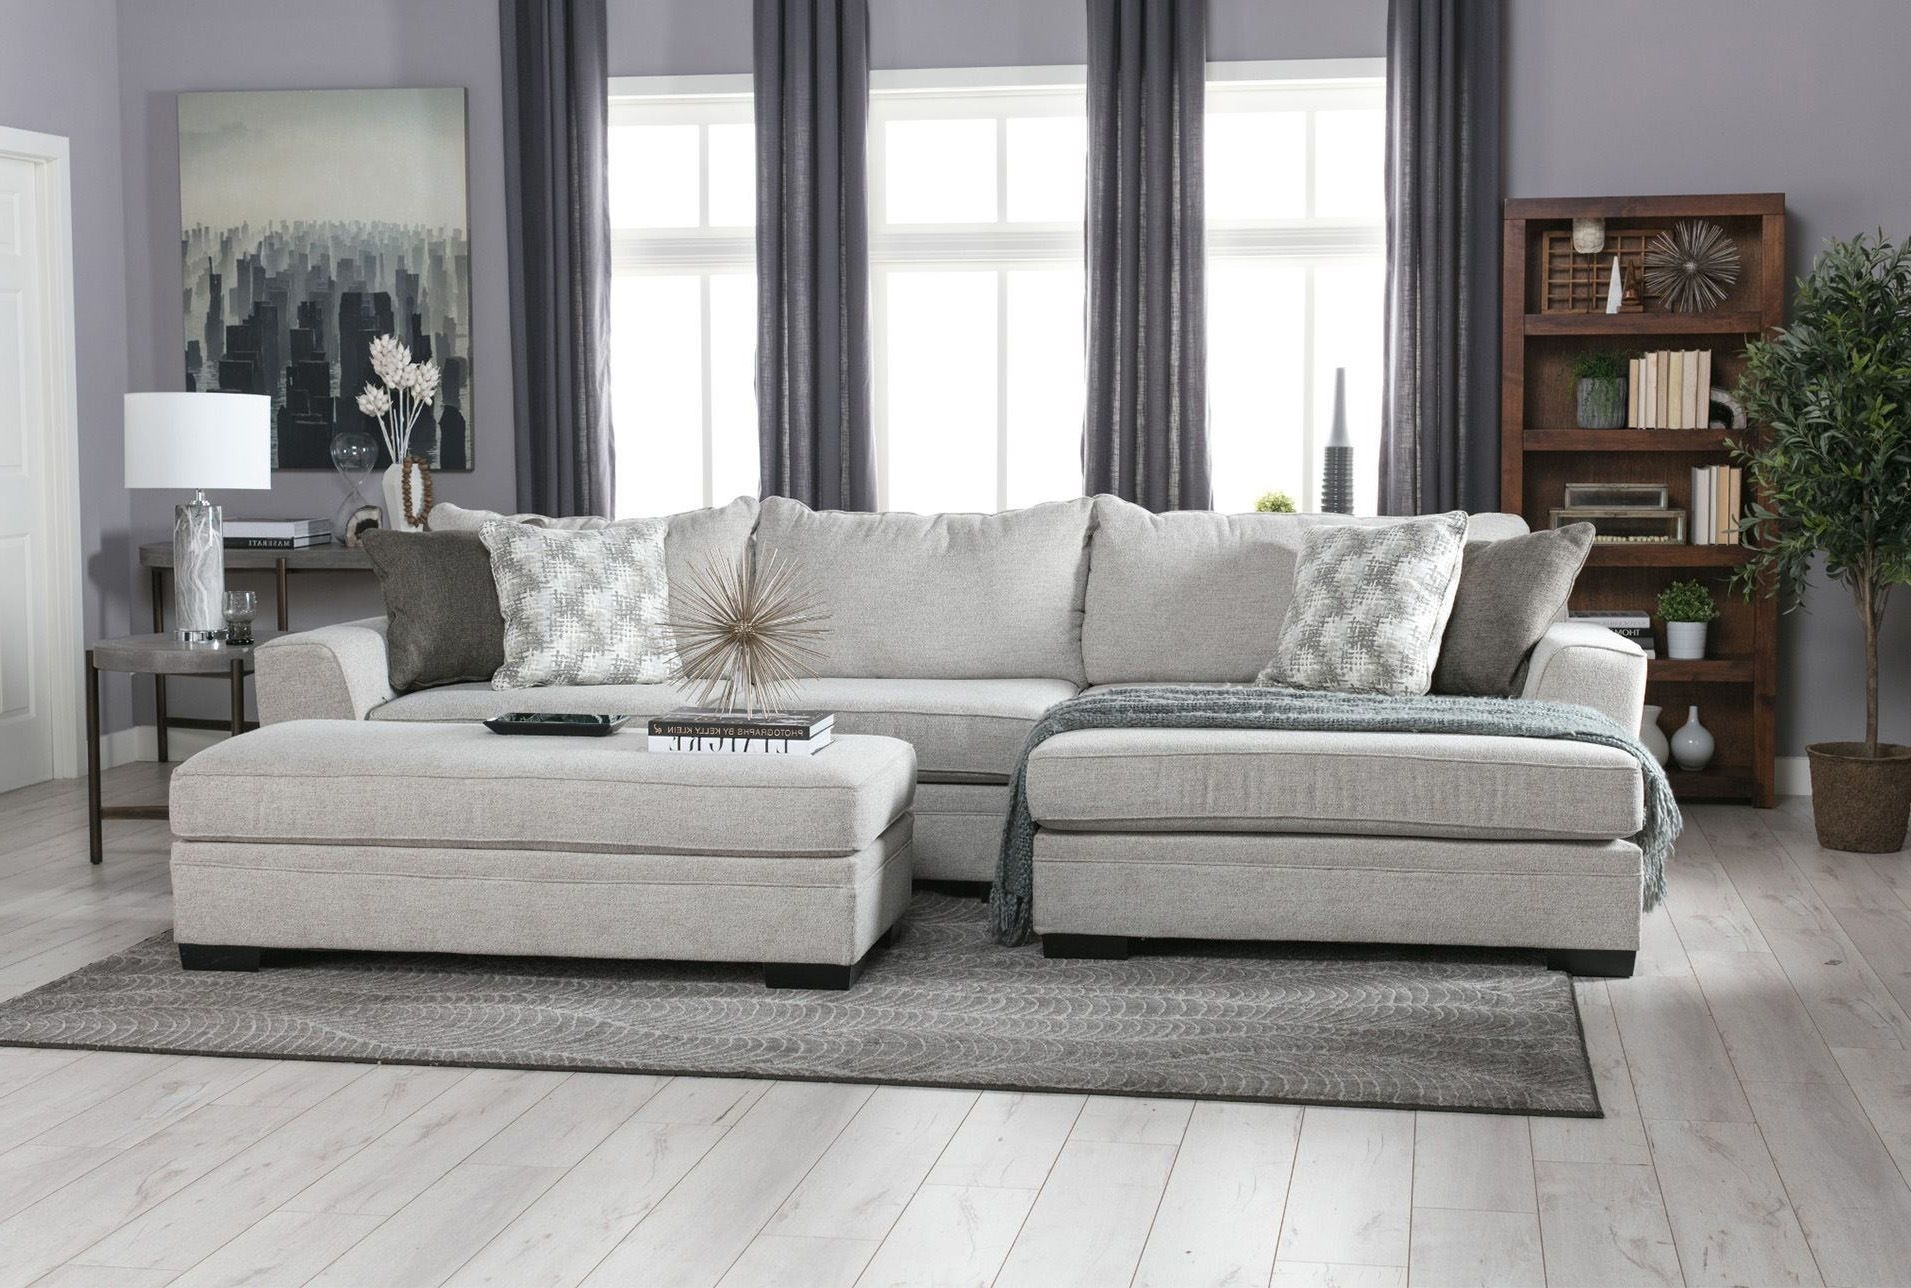 Delano 2 Piece Sectional W/raf Oversized Chaise | Living Room Ideas In Delano 2 Piece Sectionals With Laf Oversized Chaise (Image 12 of 25)